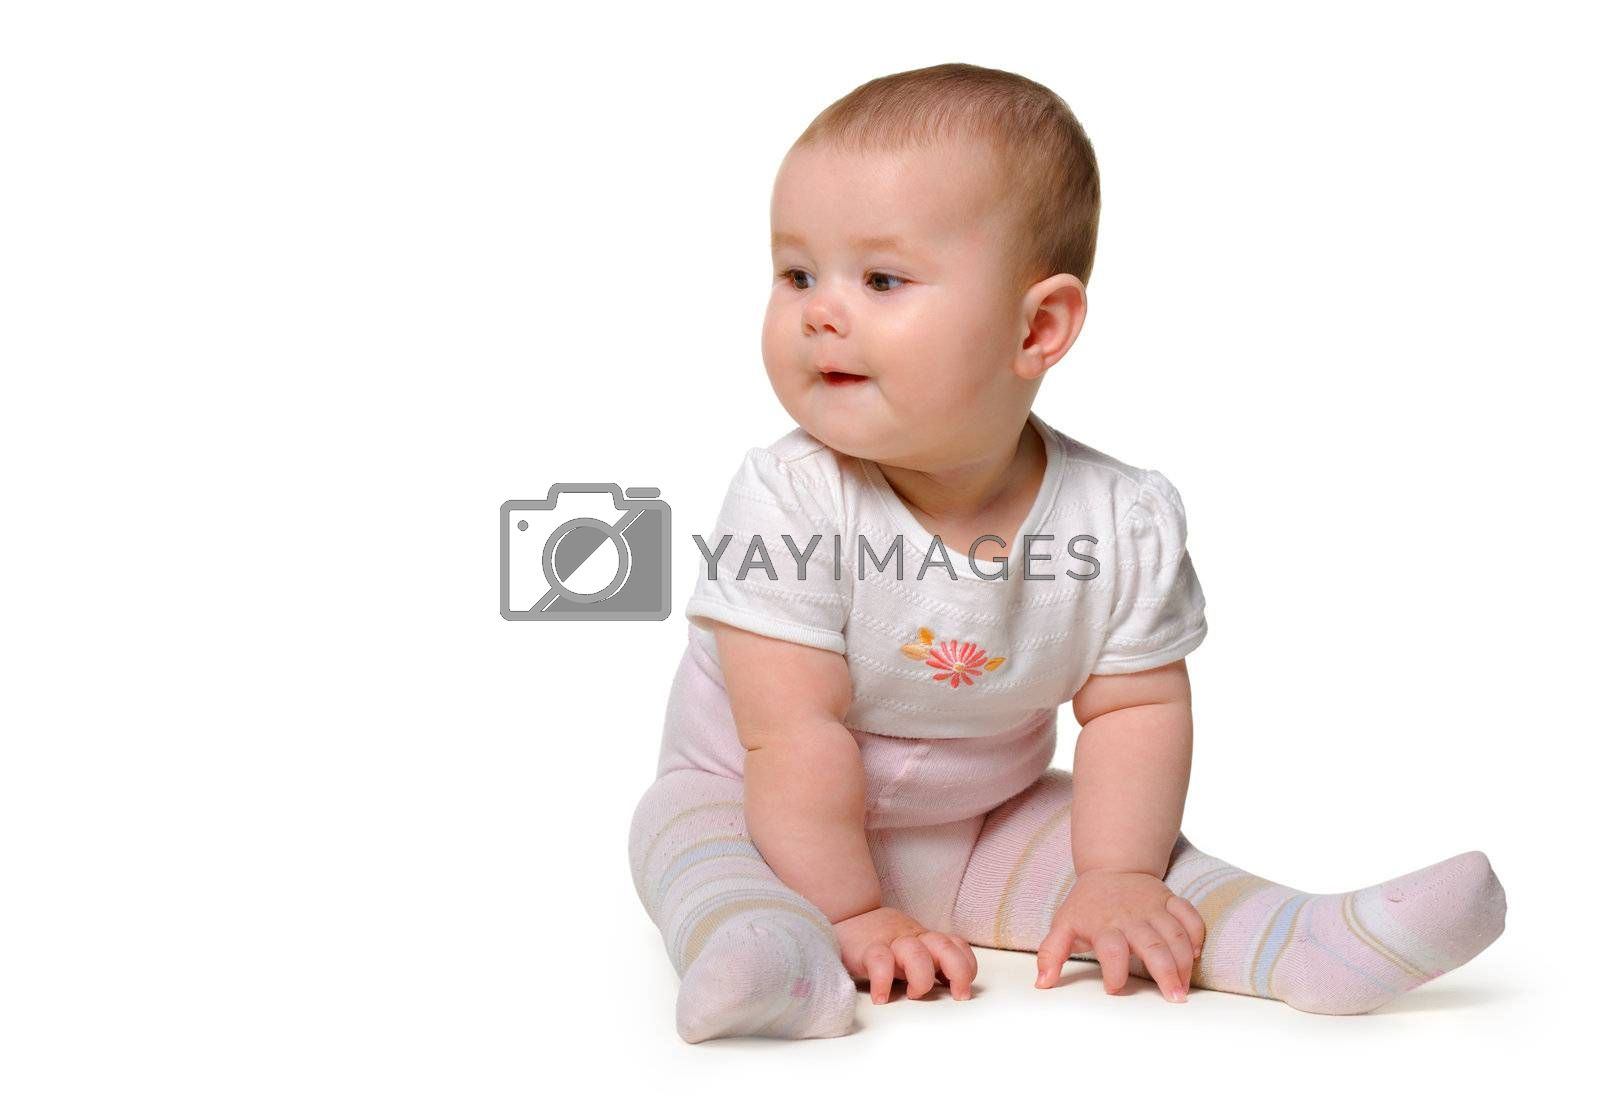 The baby. Age of 8 months. It is isolated on a white background